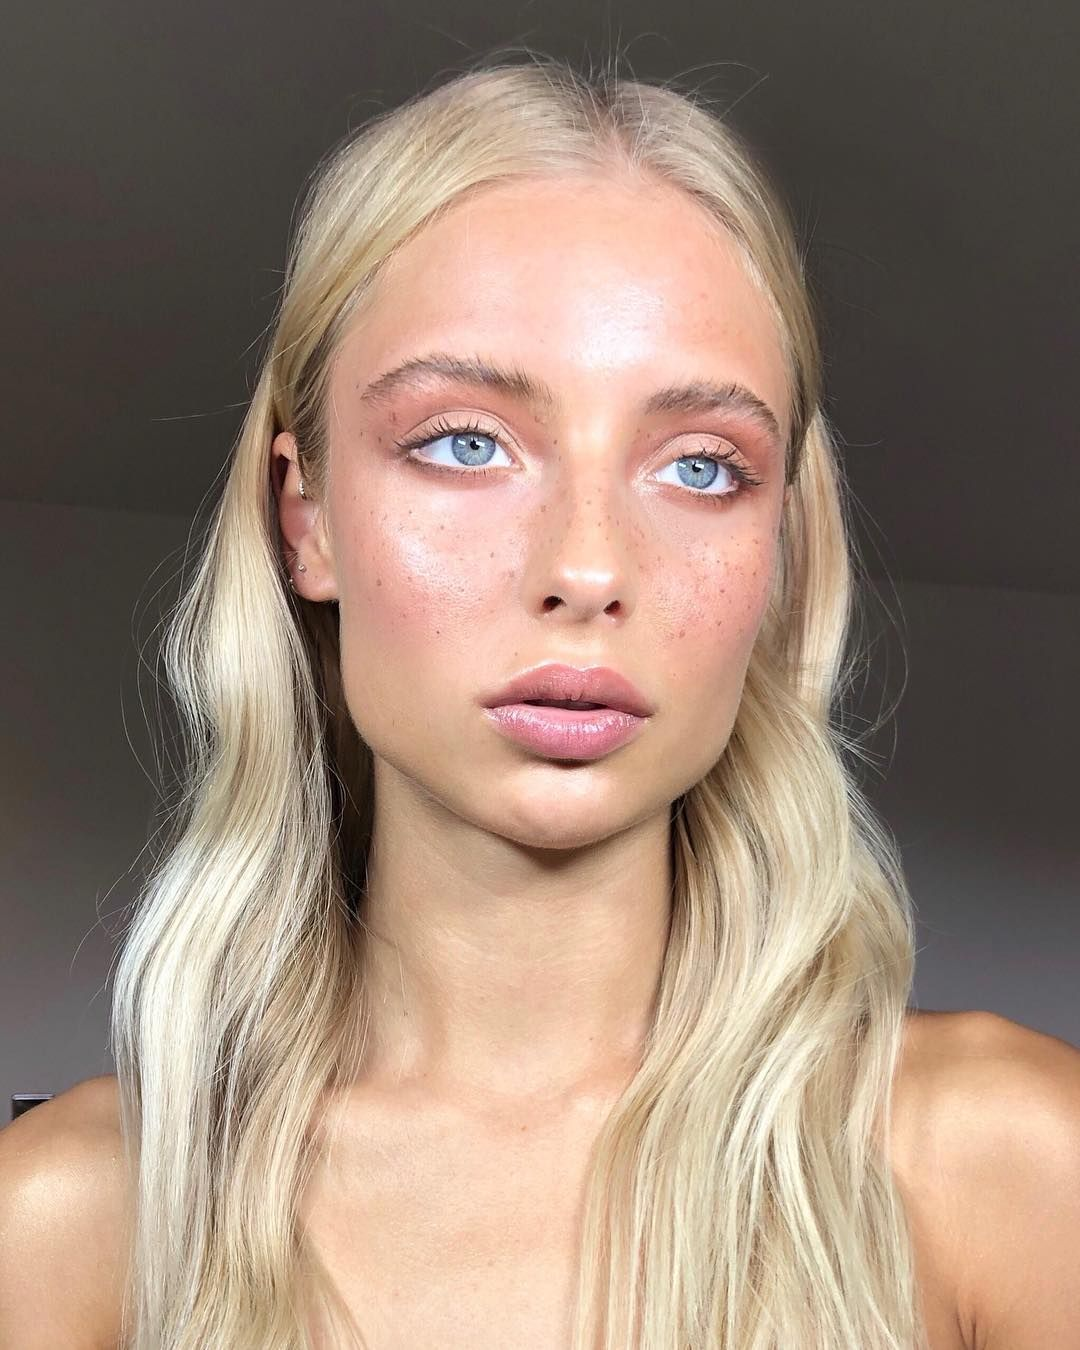 Starting The Day With Freckles A Soft Glow On This Scandinavian Beauty Margauxalexandra Hair By Patrickwilso Makeup Looks Light Blonde Hair Natural Makeup